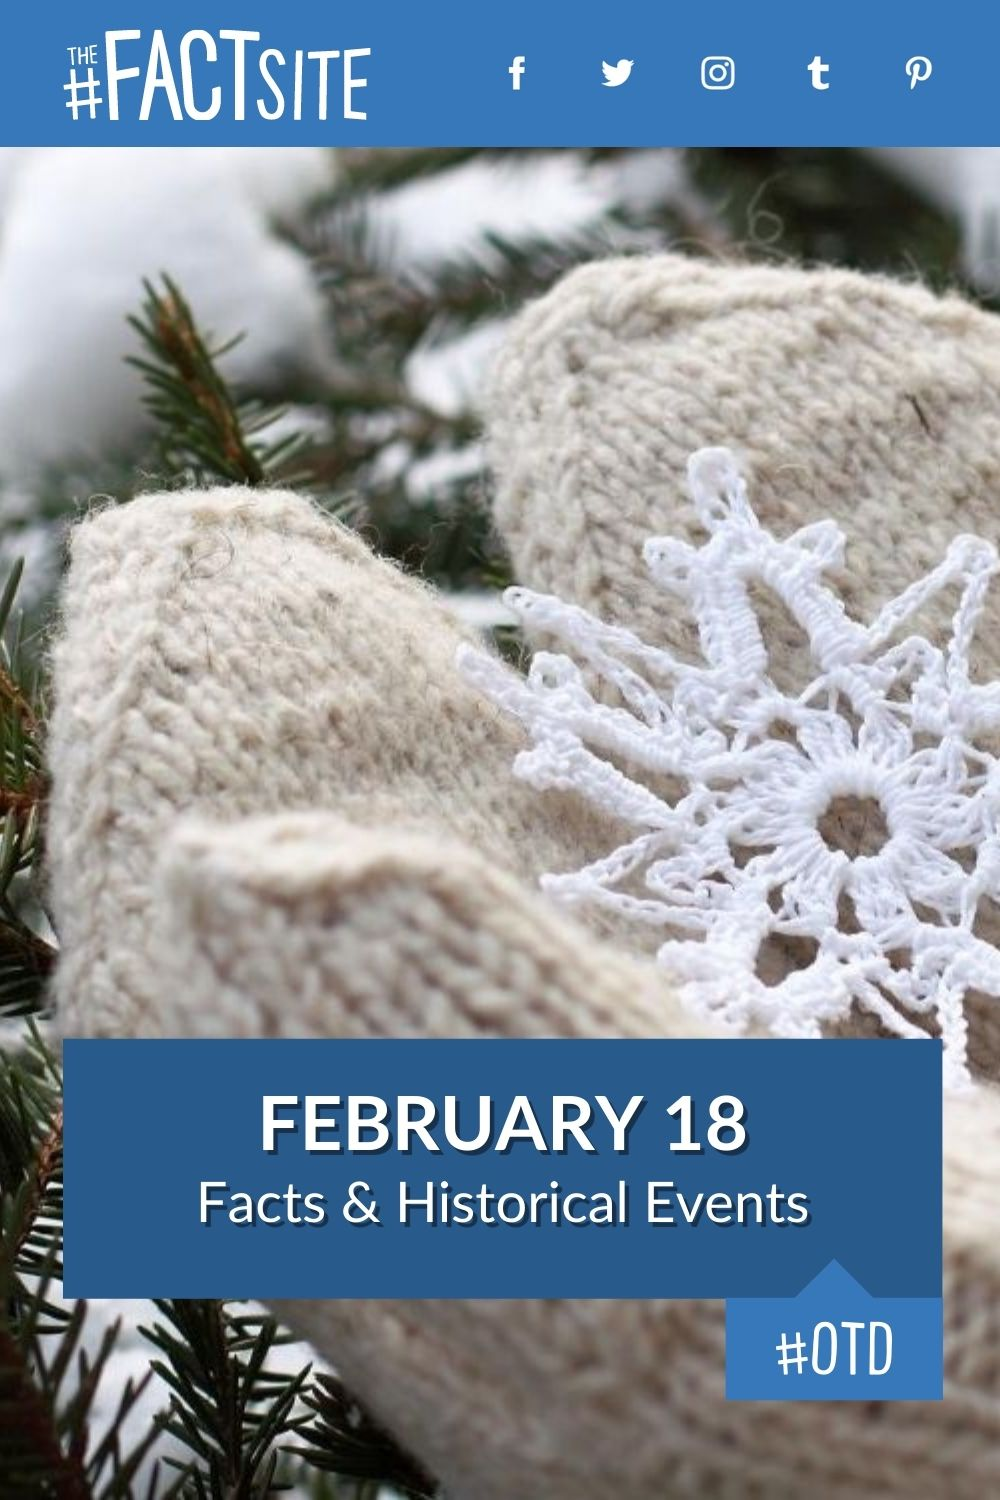 Facts & Historic Events That Happened on February 18